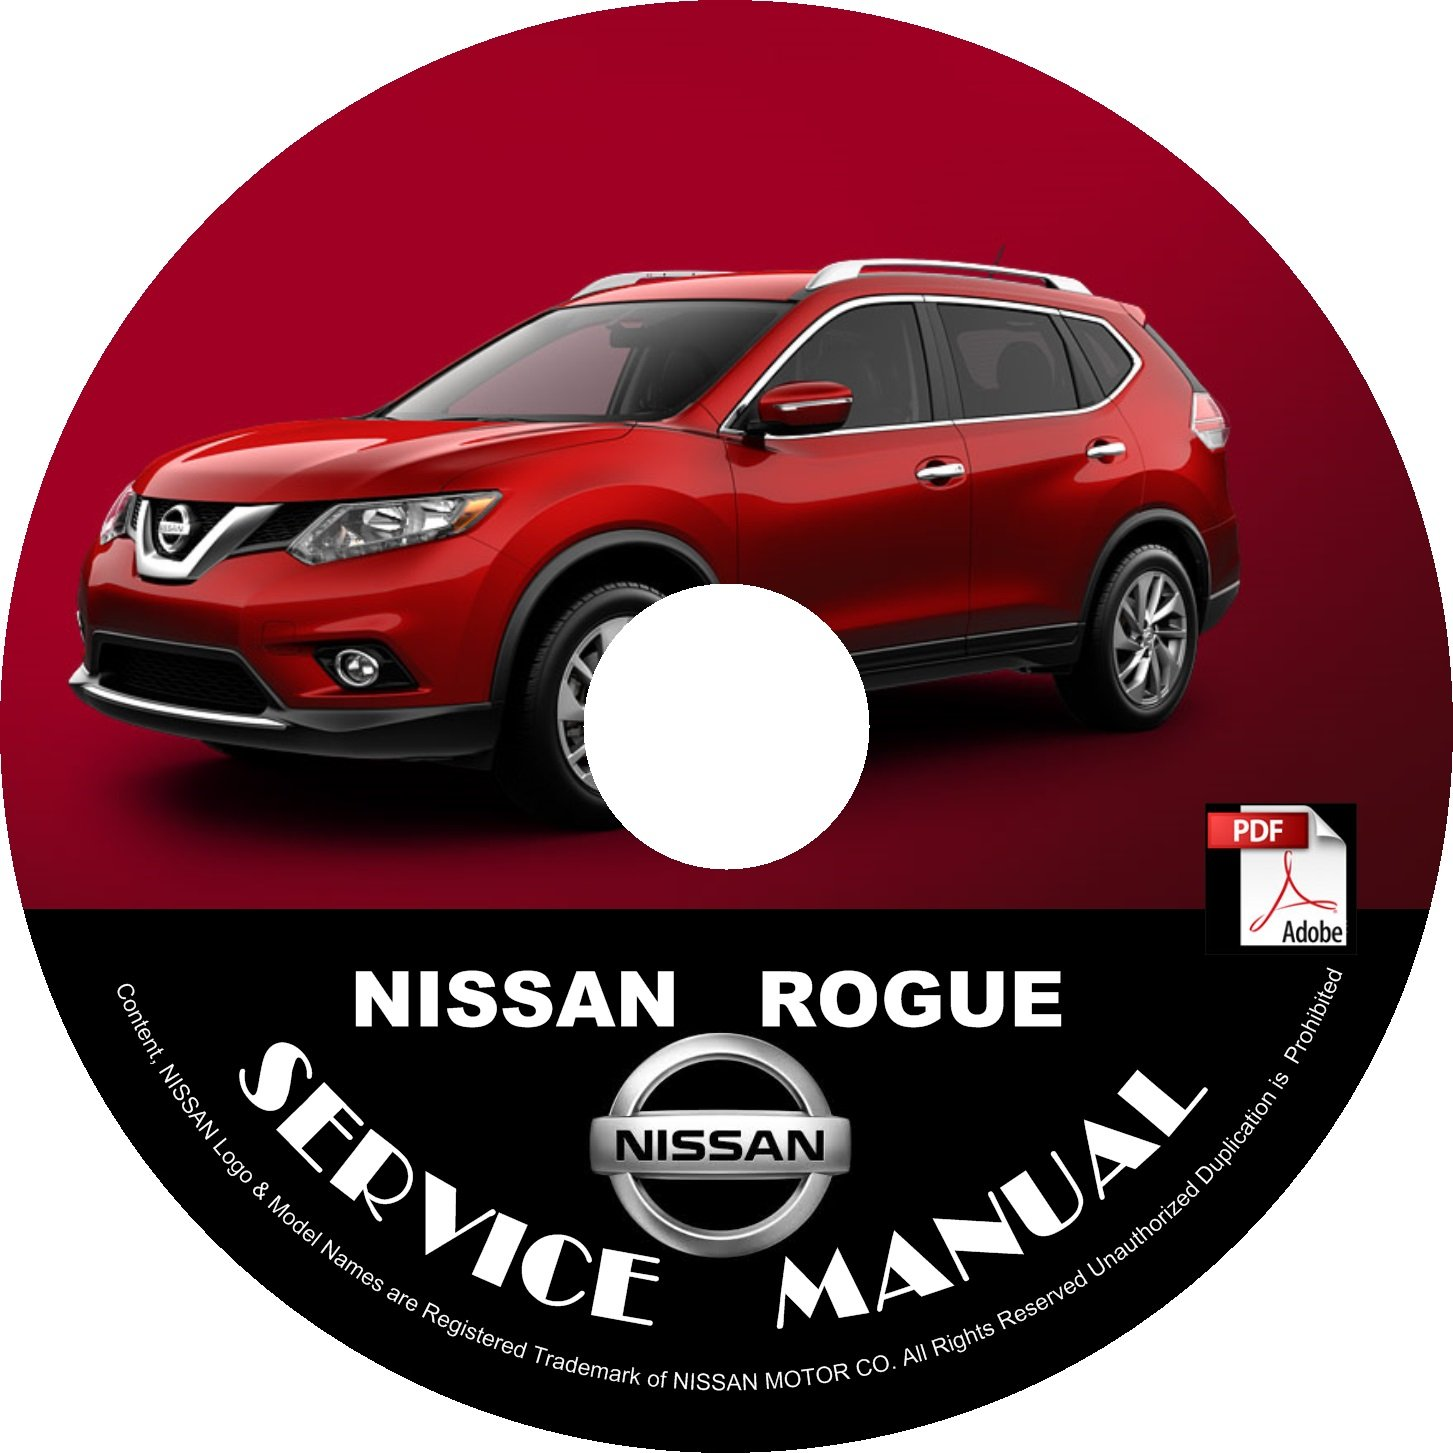 2015 Nissan Rogue Service Repair Shop Manual on CD Fix Repair Rebuild '15 Workshop Guide